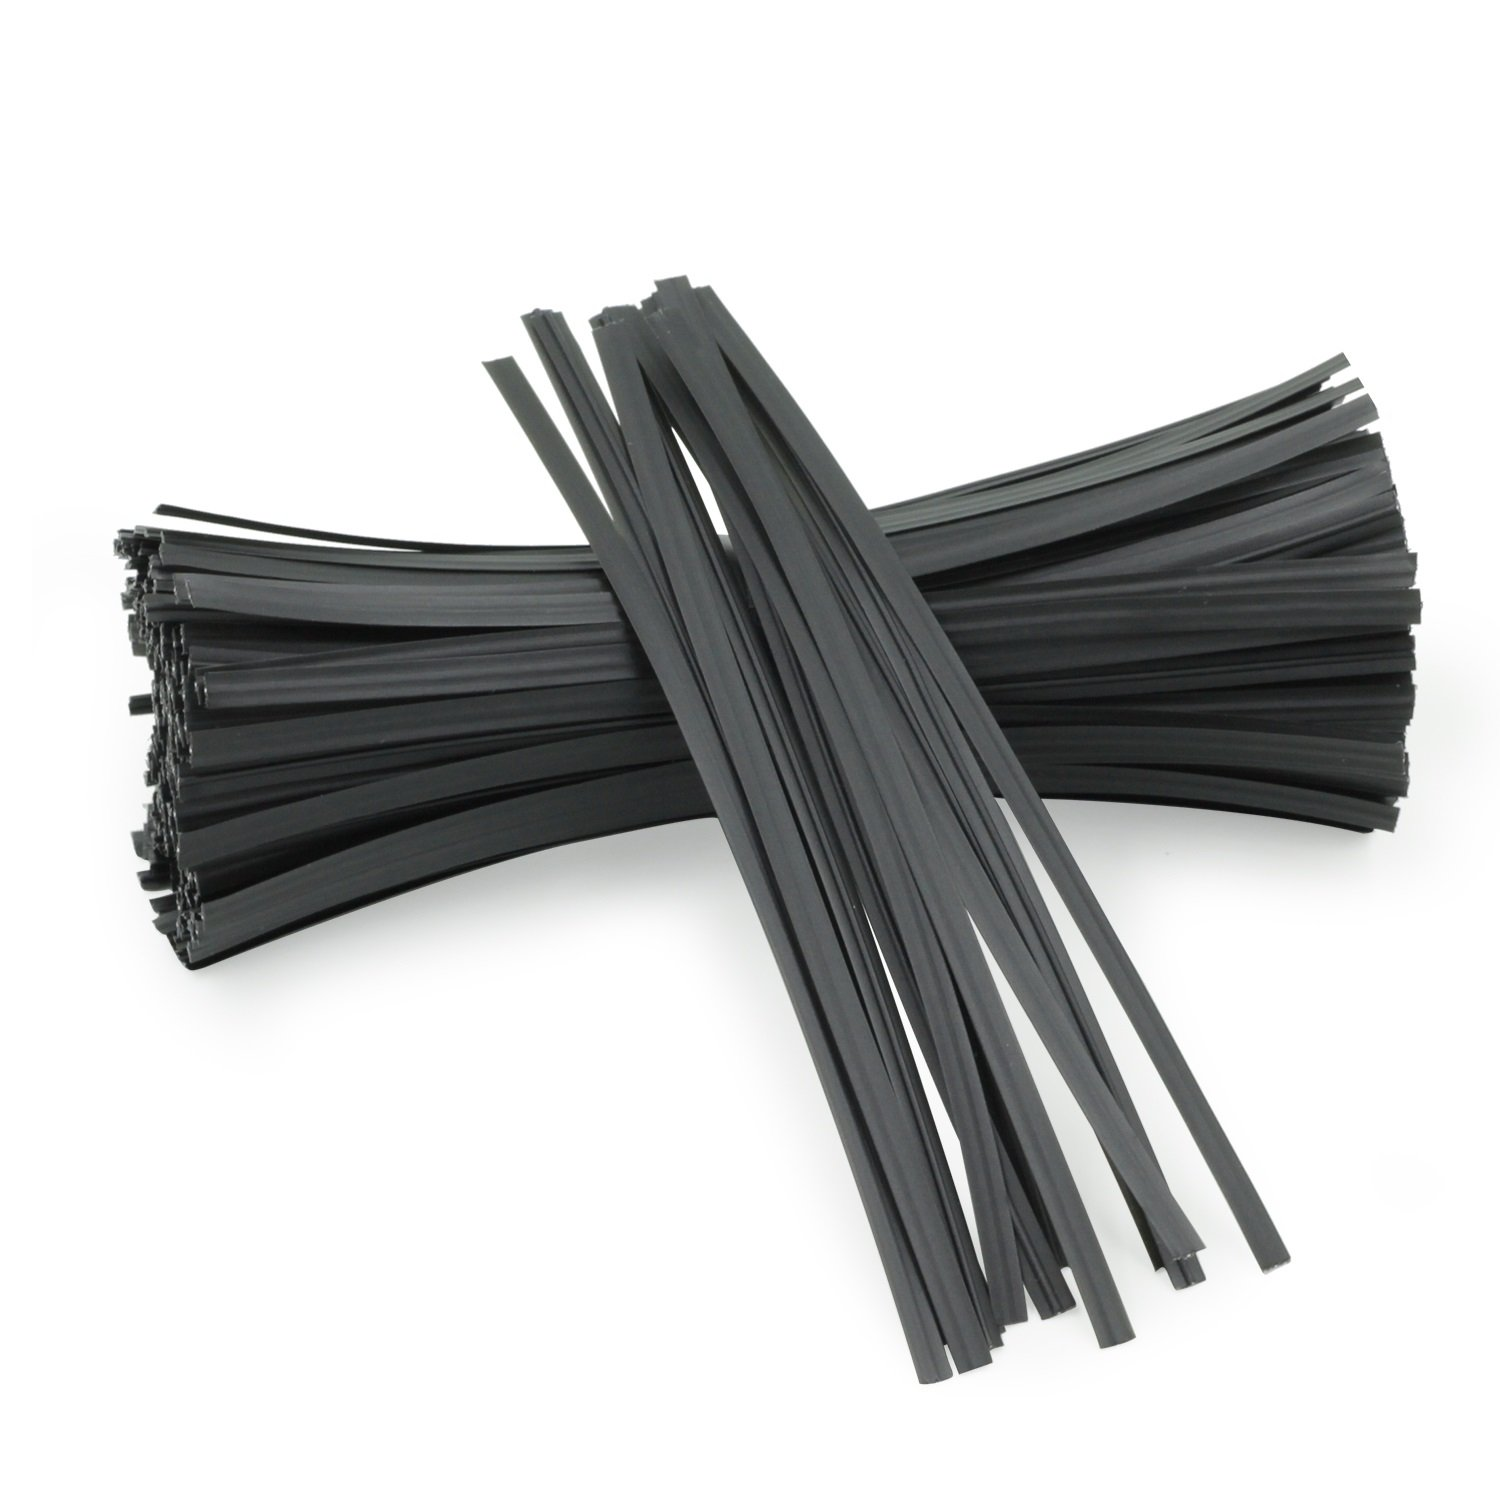 Easytle 5'' Plastic Black Twist Ties/Twist Tie/Cable Ties/Cable Tie 100 Pcs